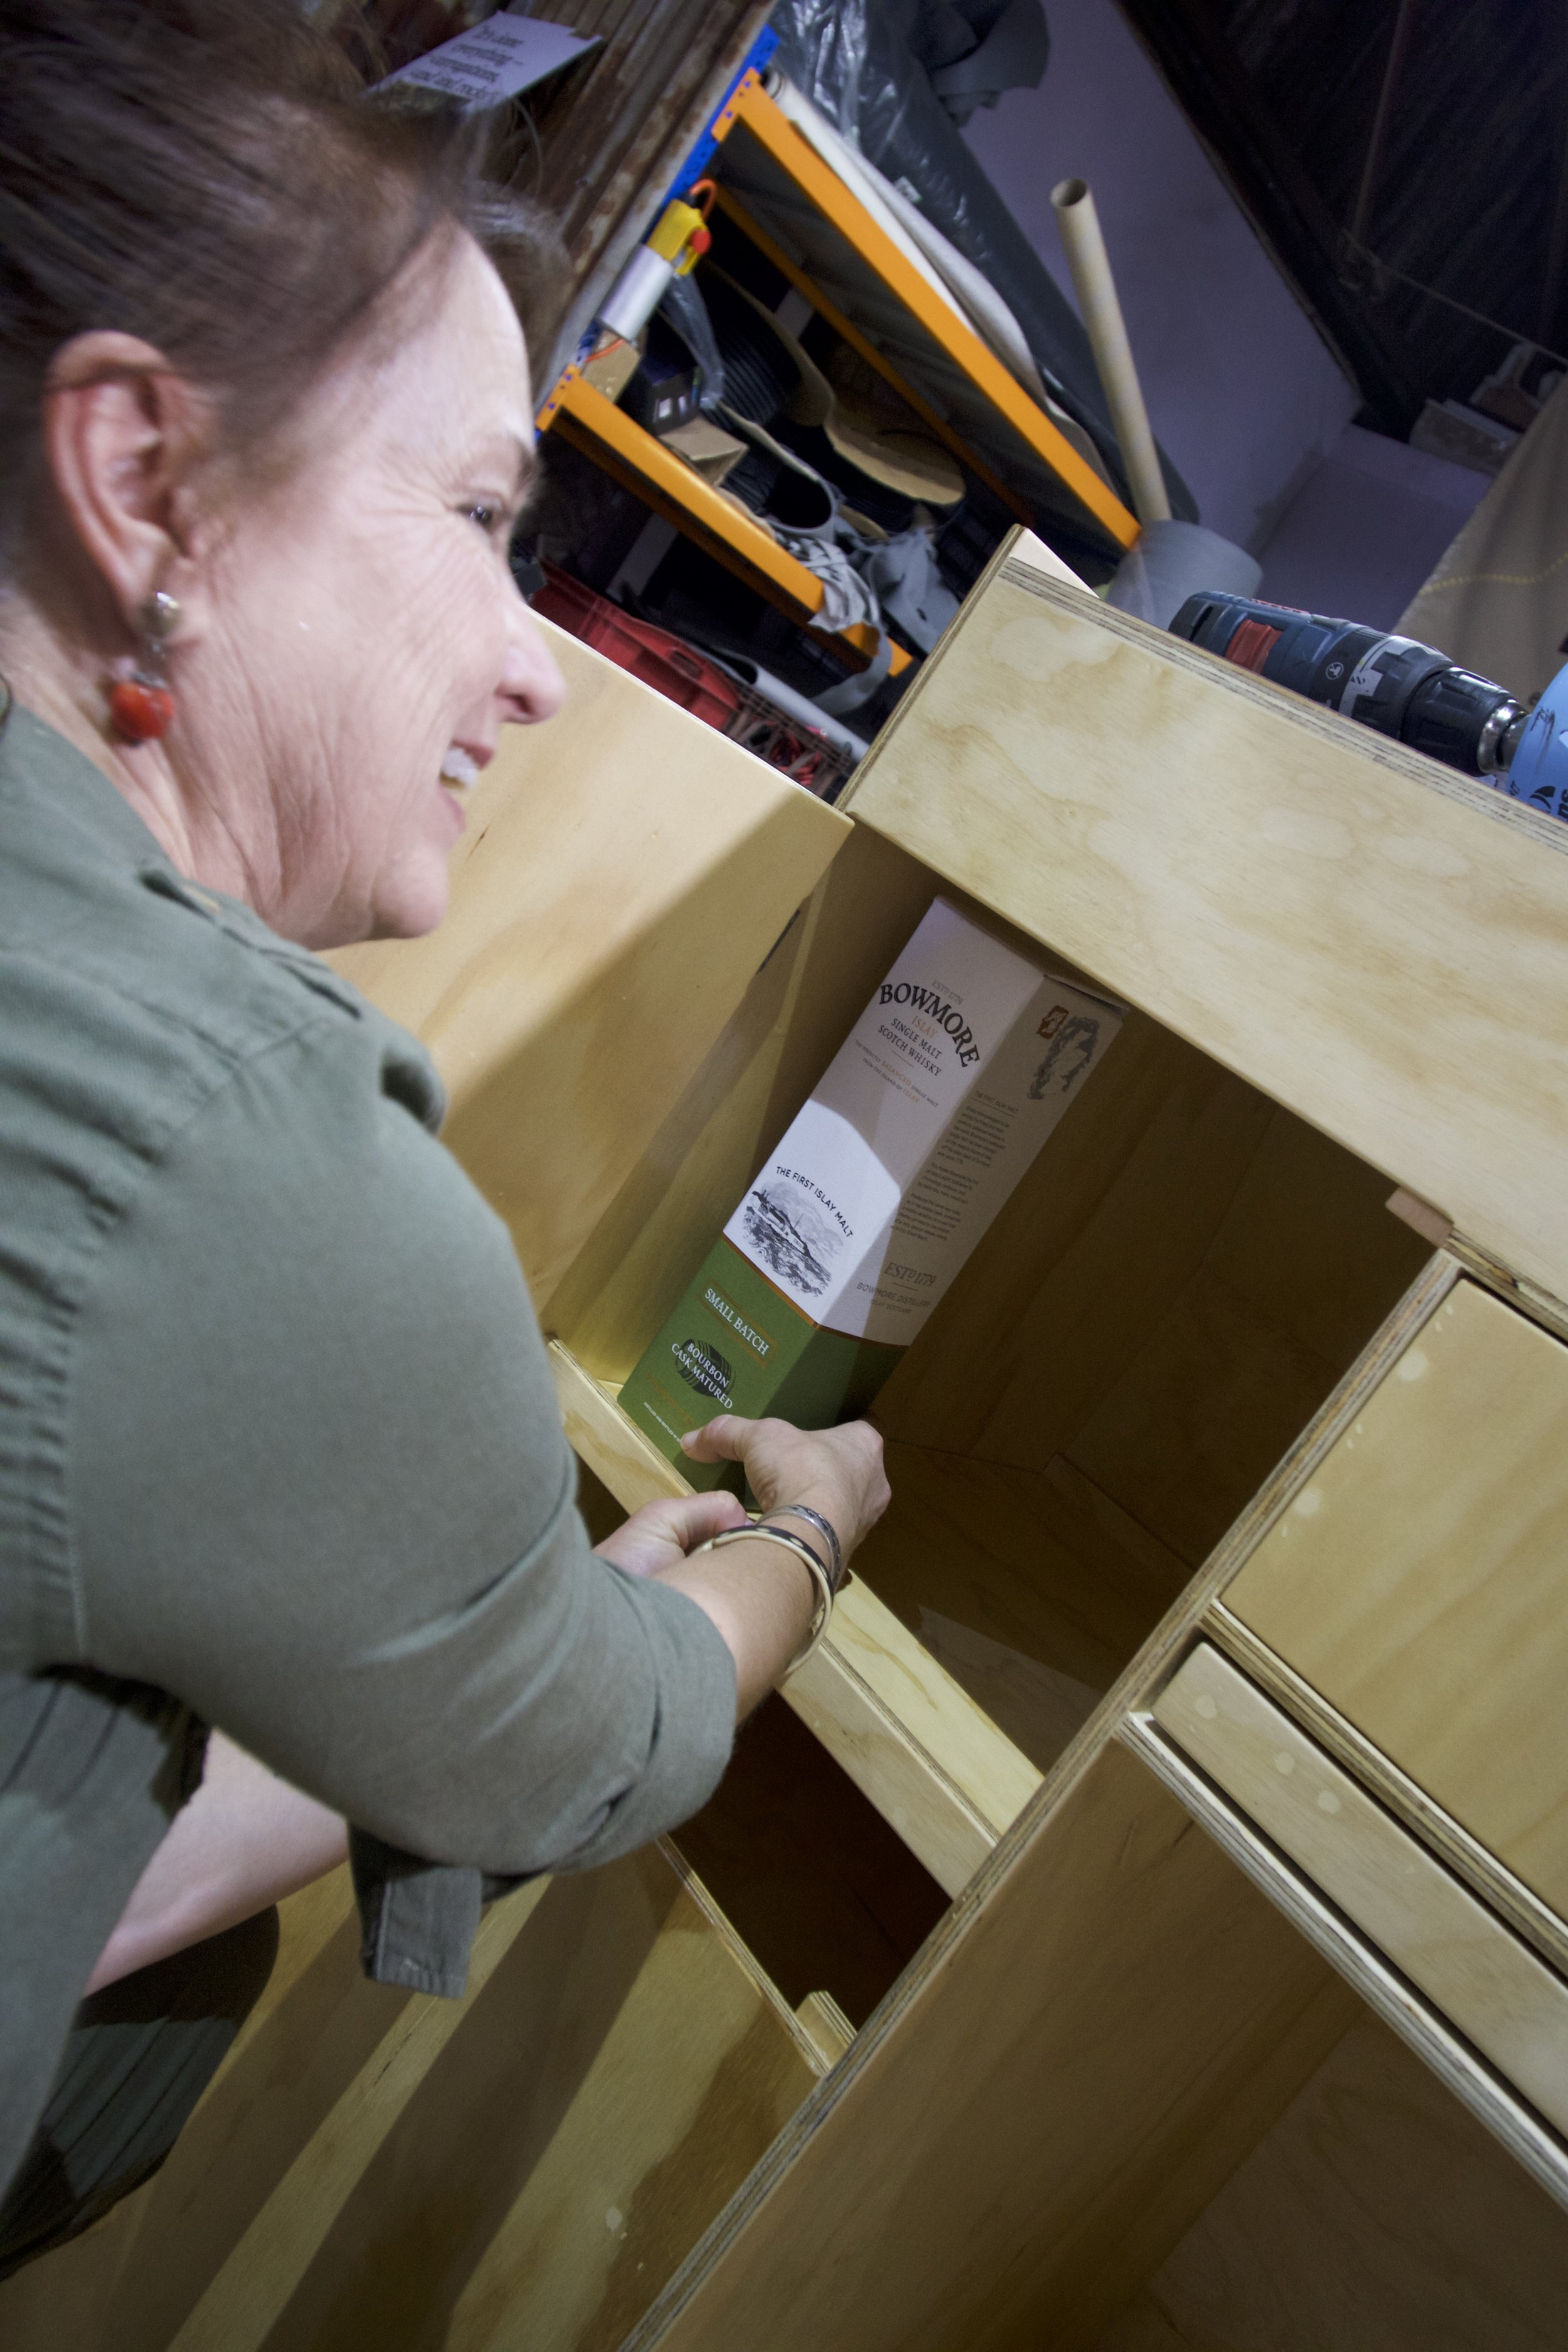 Critical last-minute tests of cabinet fit.